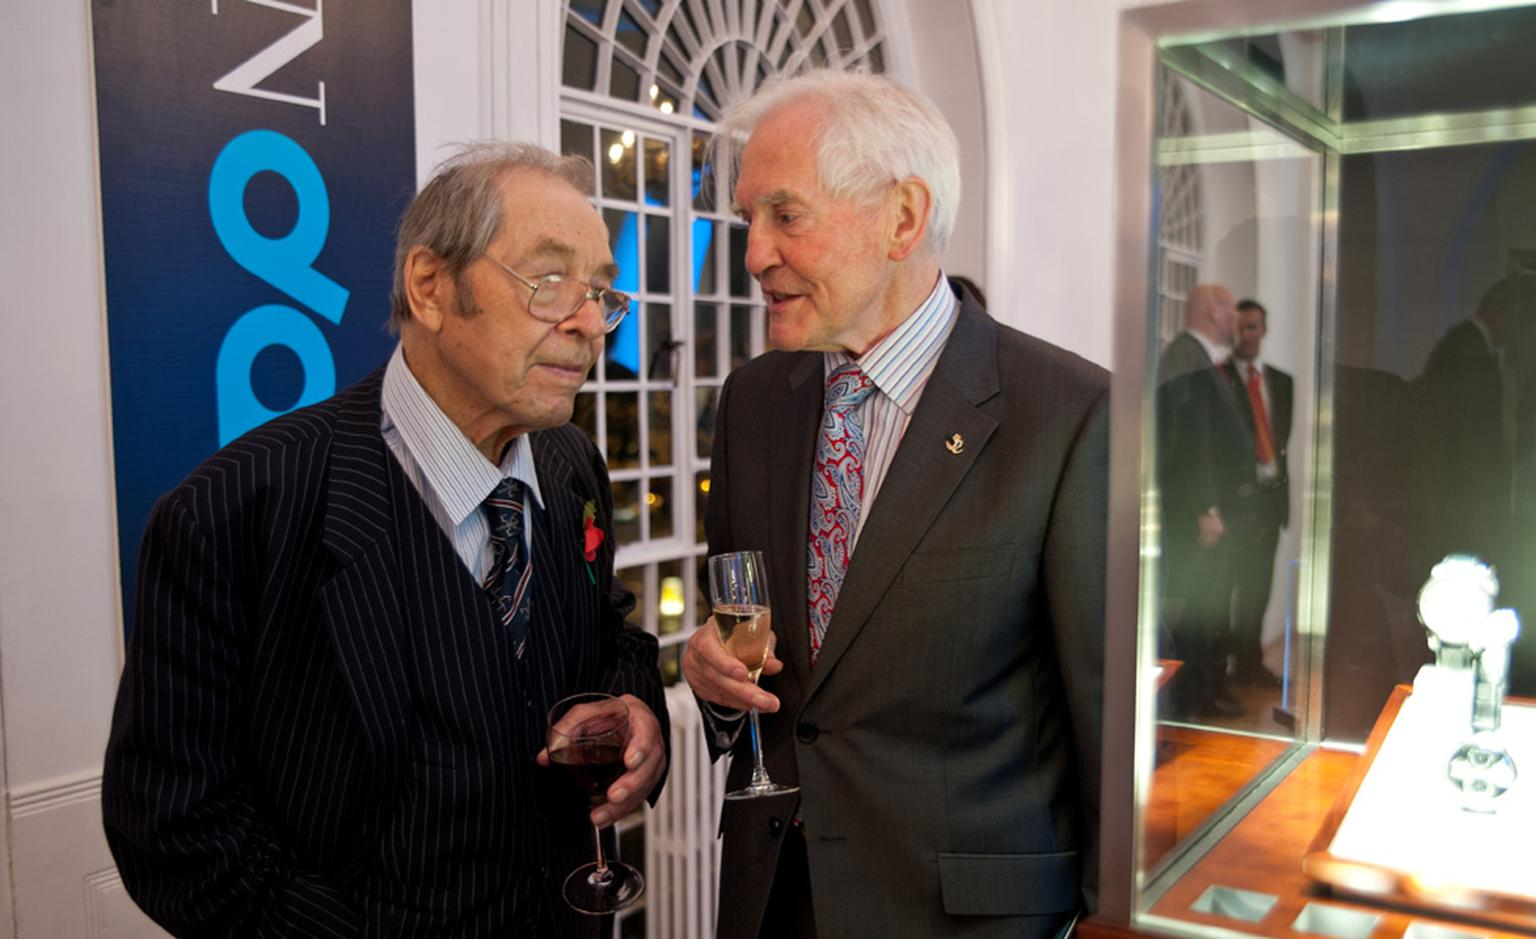 The UK's greatest watchmaker, the late Dr George Daniels (left) at Salon QP 2010 with John C Taylor.